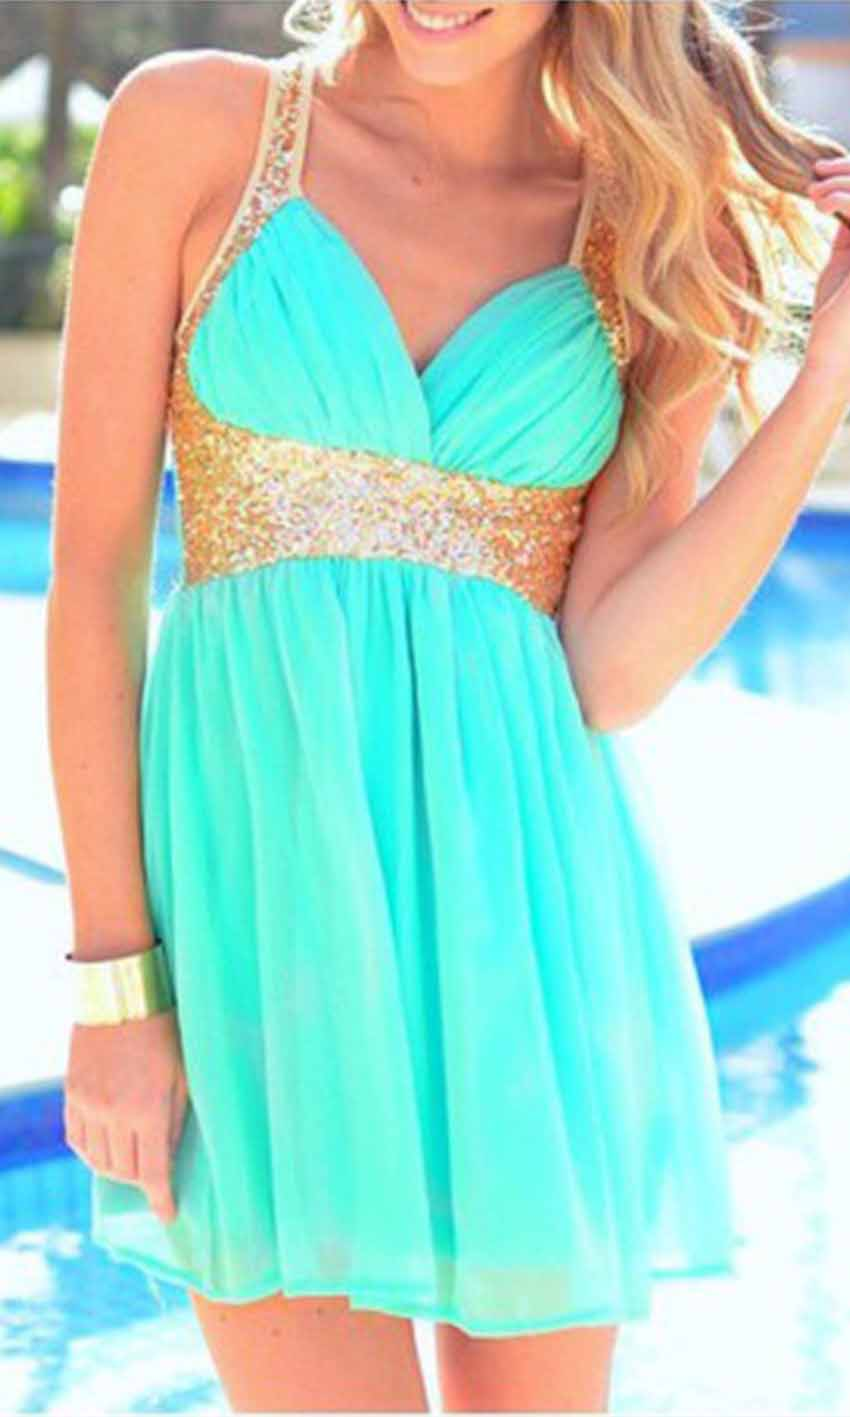 Black and Gold Sequin Short Prom Dresses UK KSP380 [KSP380] - £87.00 : Cheap Prom Dresses Uk, Bridesmaid Dresses, 2014 Prom & Evening Dresses, Look for cheap elegant prom dresses 2014, cocktail gowns, or dresses for special occasions? kissprom.co.uk offers various bridesmaid dresses, evening dress, free shipping to UK etc.